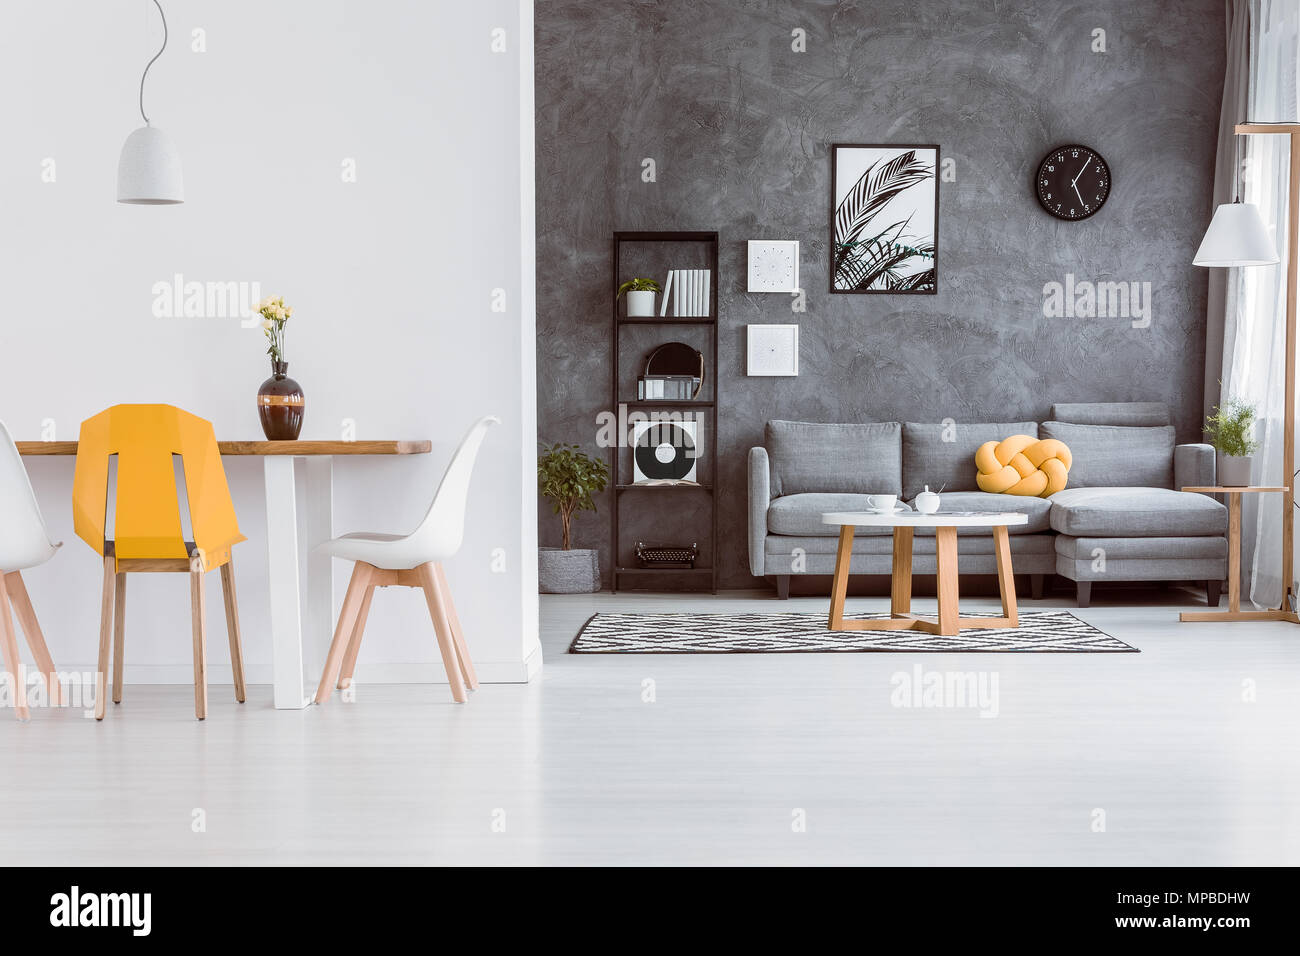 Decorative Vase On Dining Table With Yellow Chair In Living Room With Grey  Settee Against Dark Wall